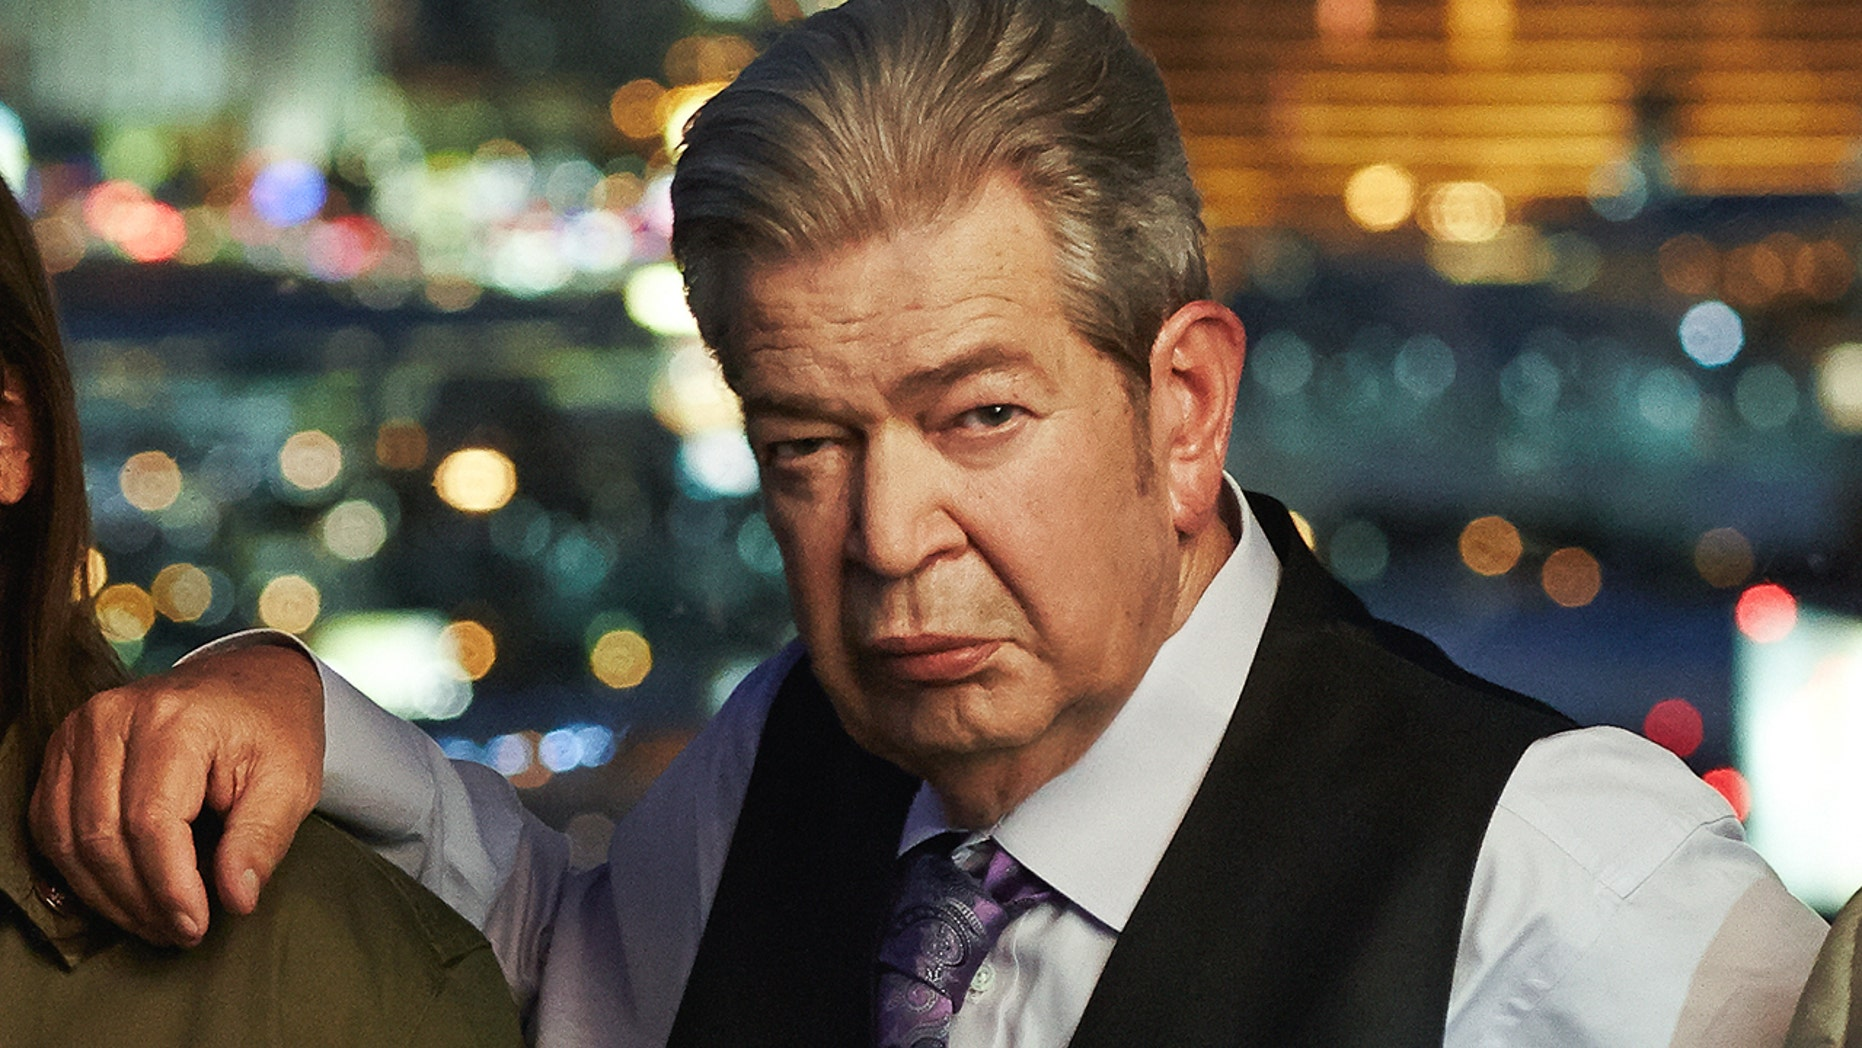 Richard 'Old Man' Harrison of 'Pawn Stars' was laid to rest on Sunday.